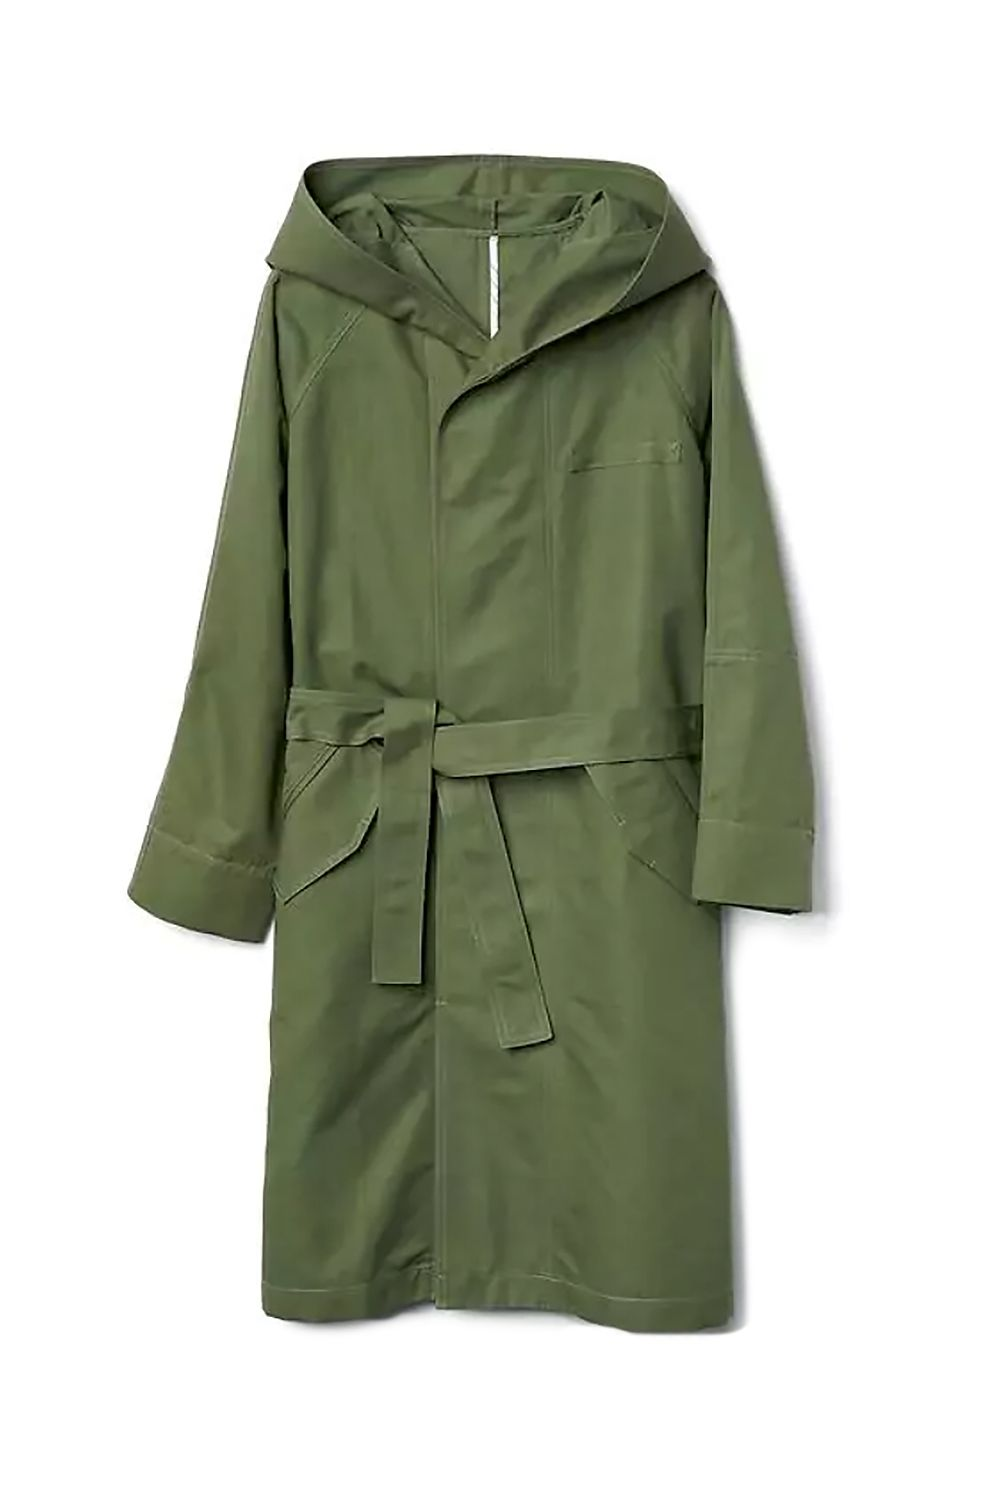 """<p>The oversize fit means you can squeeze&nbsp&#x3B;sweaters under there and look as chic as Josephine Le Tutour (clicky clicky).&nbsp&#x3B;</p><p>$100, <a href=""""http://www.gap.com/browse/product.do?cid=1017793&amp&#x3B;vid=1&amp&#x3B;pid=528063002"""" target=""""_blank"""" data-tracking-id=""""recirc-text-link"""">gap.com</a>.</p>"""